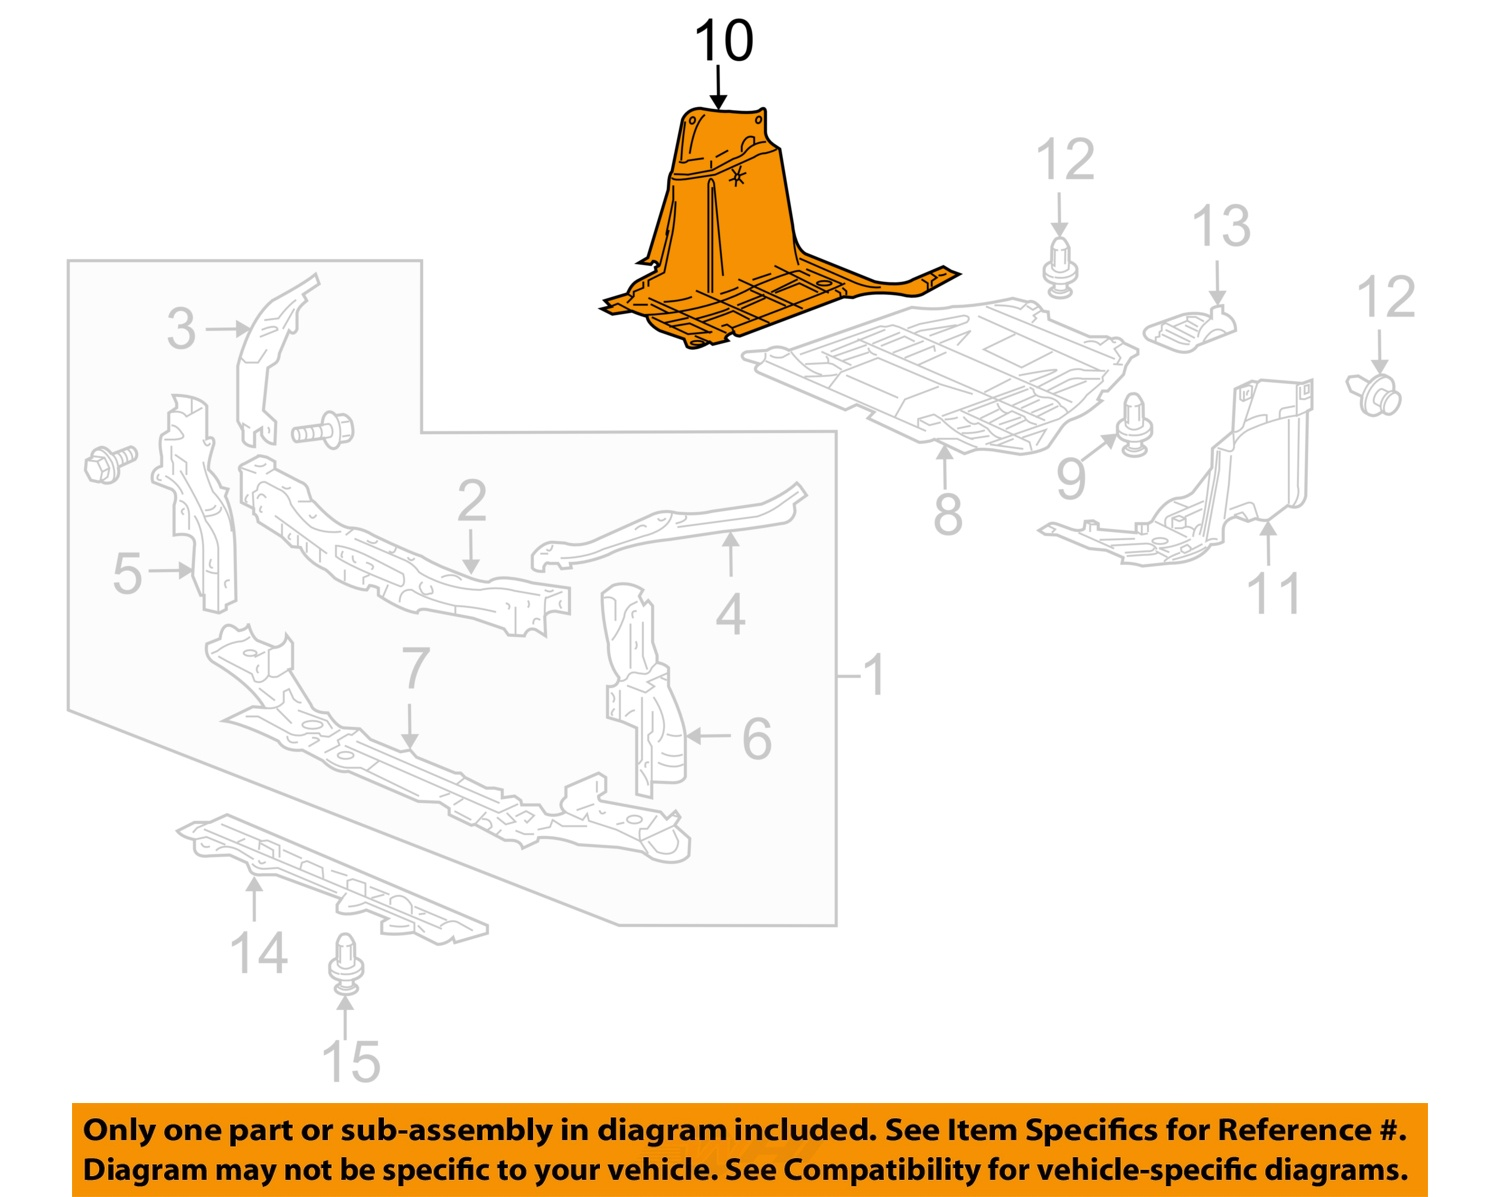 Assembly INSIGHT 10-14 RADIATOR SUPPORT